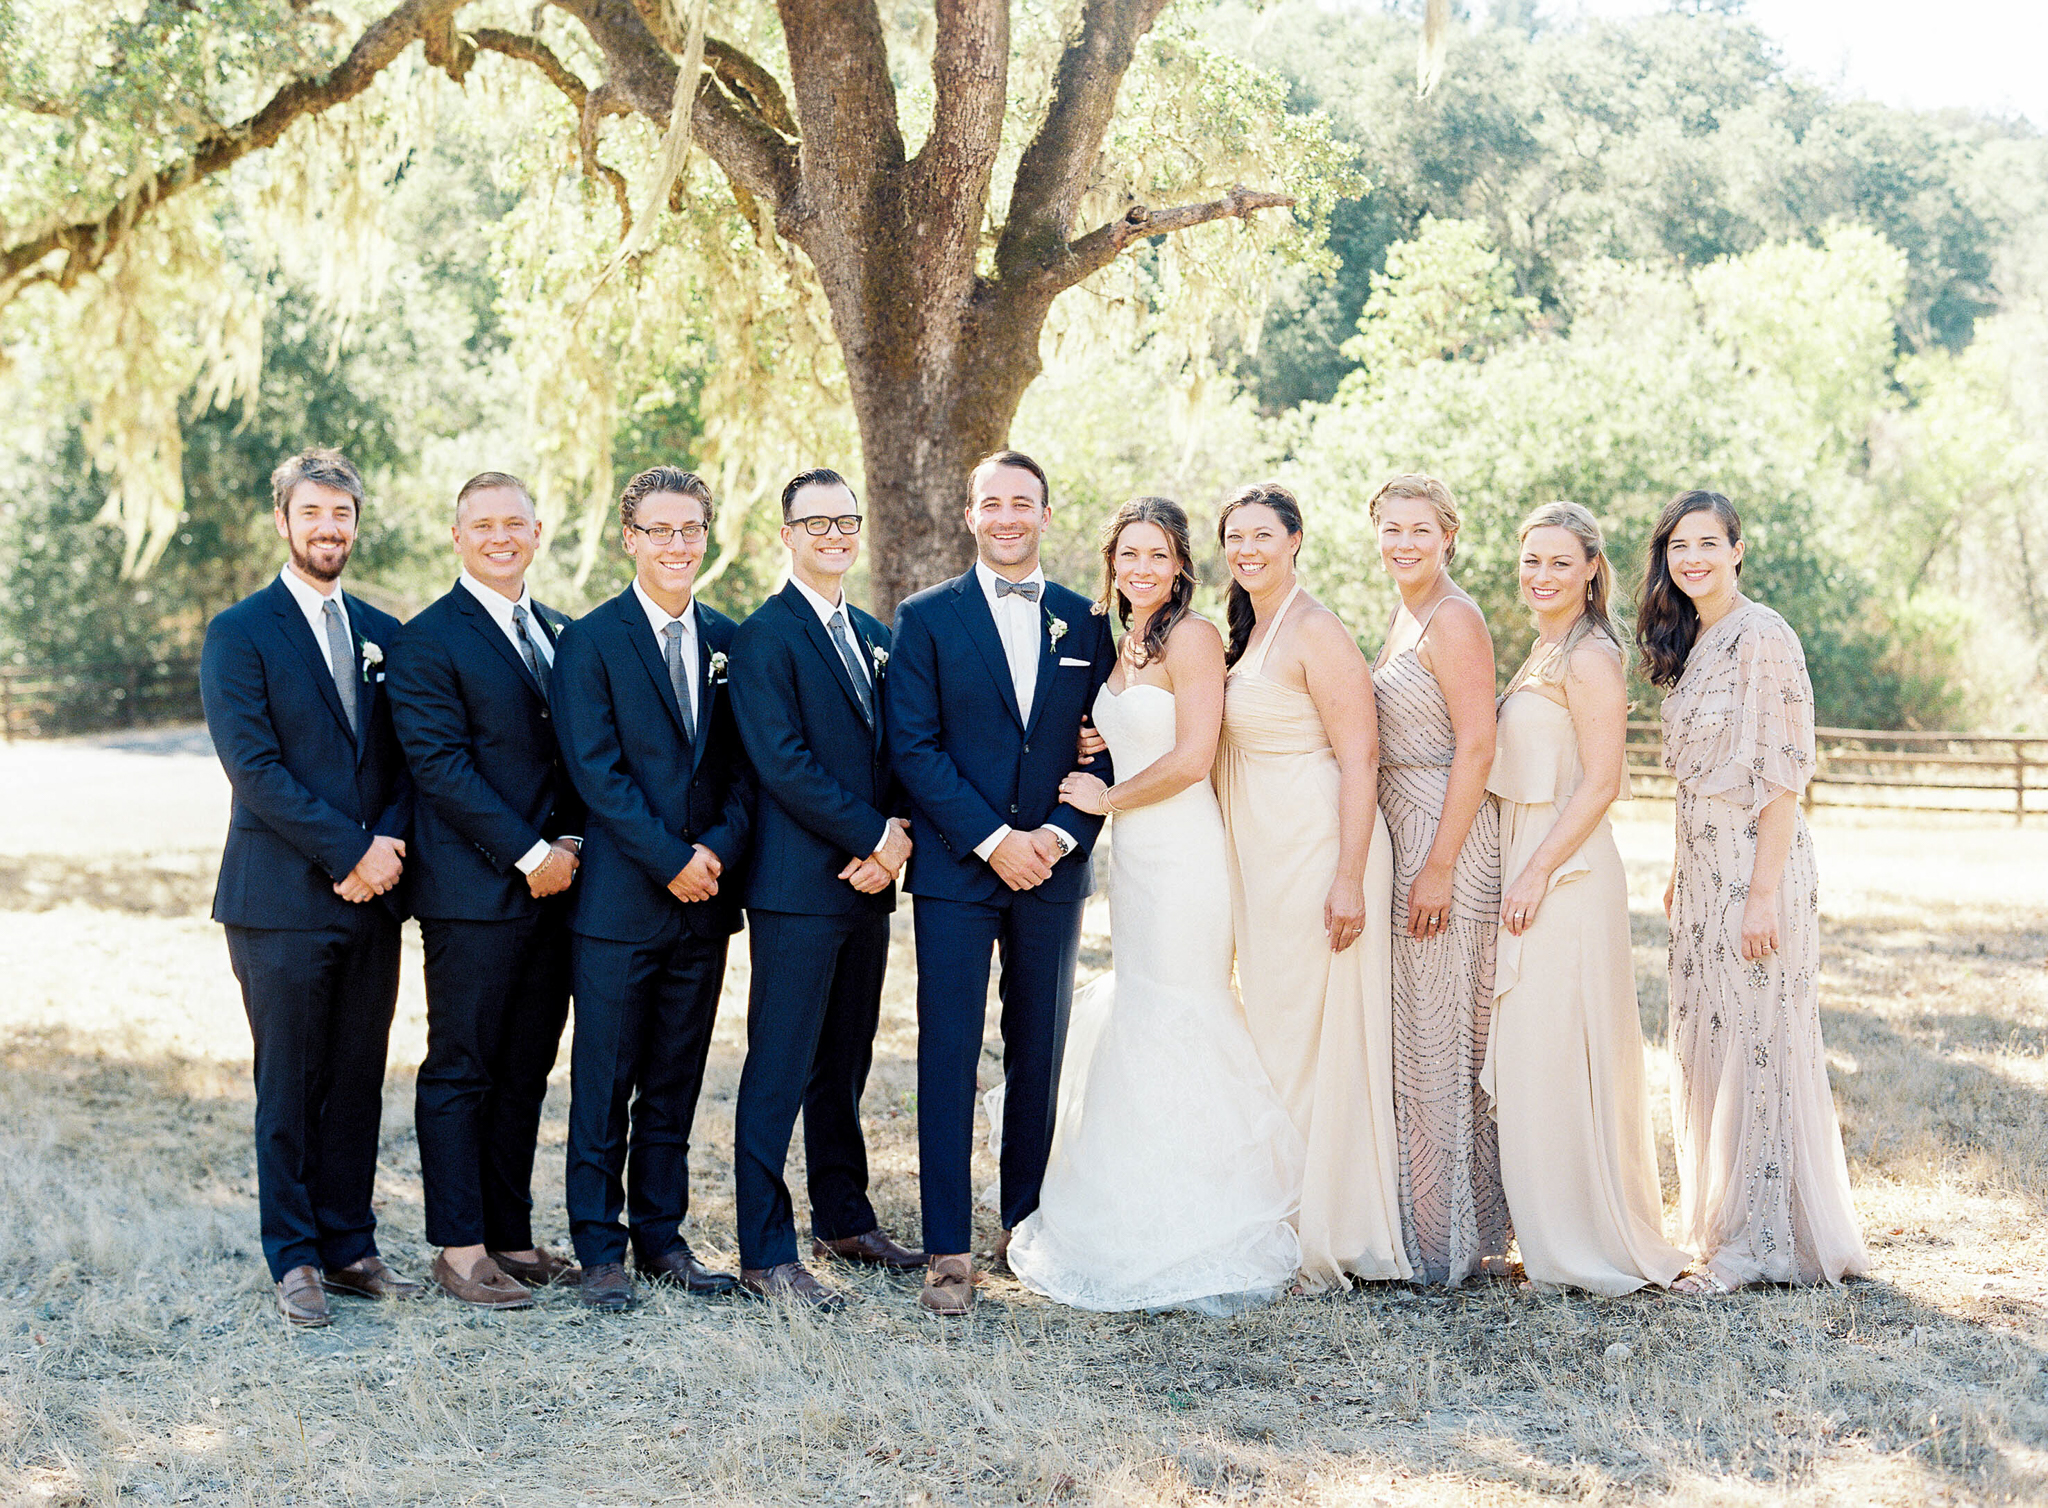 Meghan Mehan Photography - Fine Art Film Wedding Photography - San Francisco | Napa | Sonoma | Big Sur | Chicago | Minneapolis | Milwaukee | Lake Geneva | Door County | Wisconsin 043.jpg